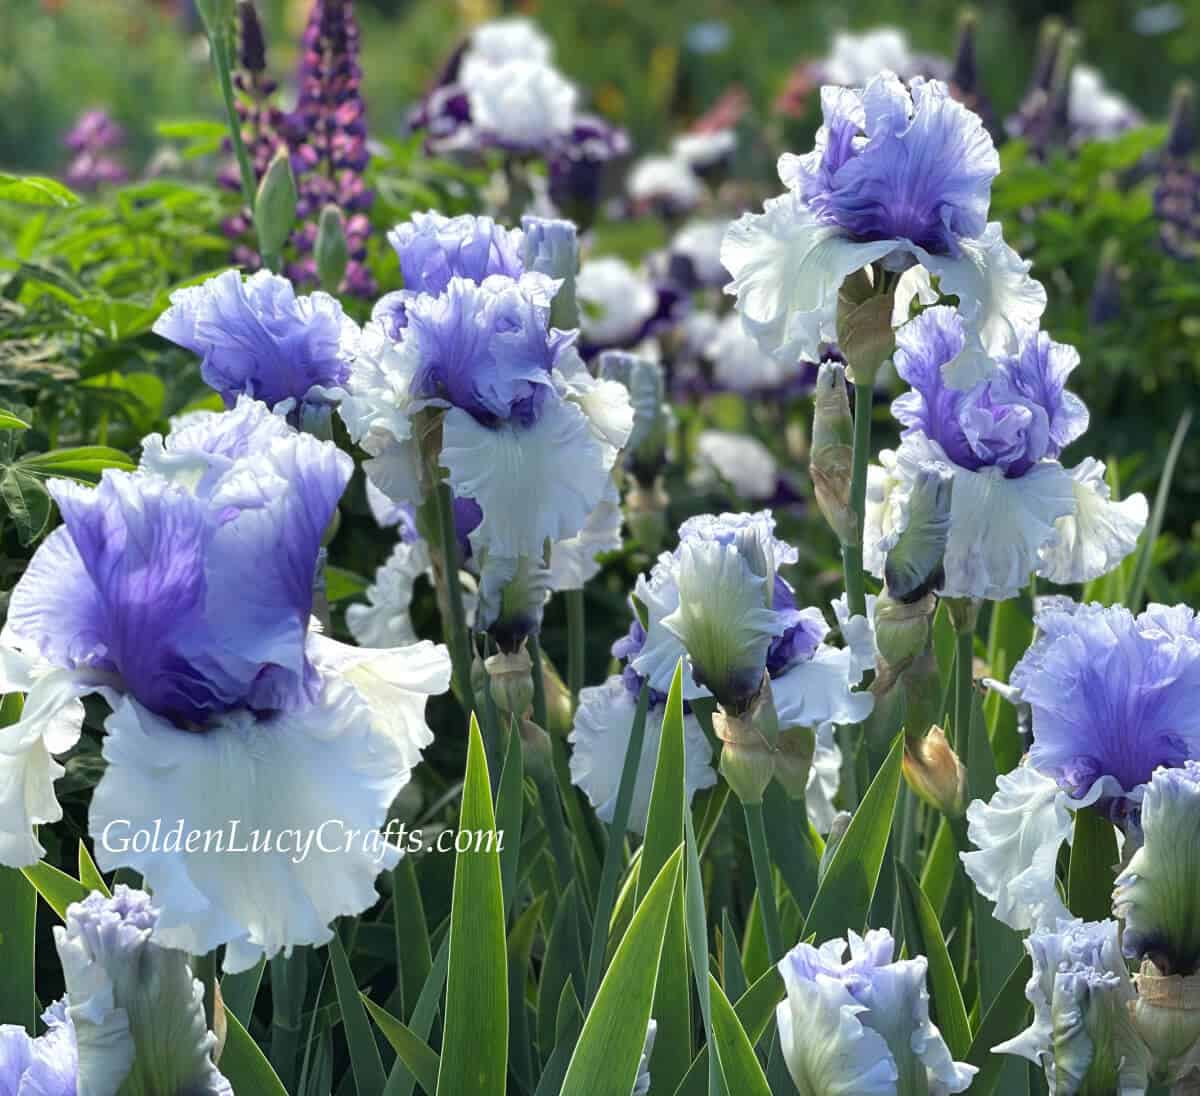 Irises - white lower petals and violet top.